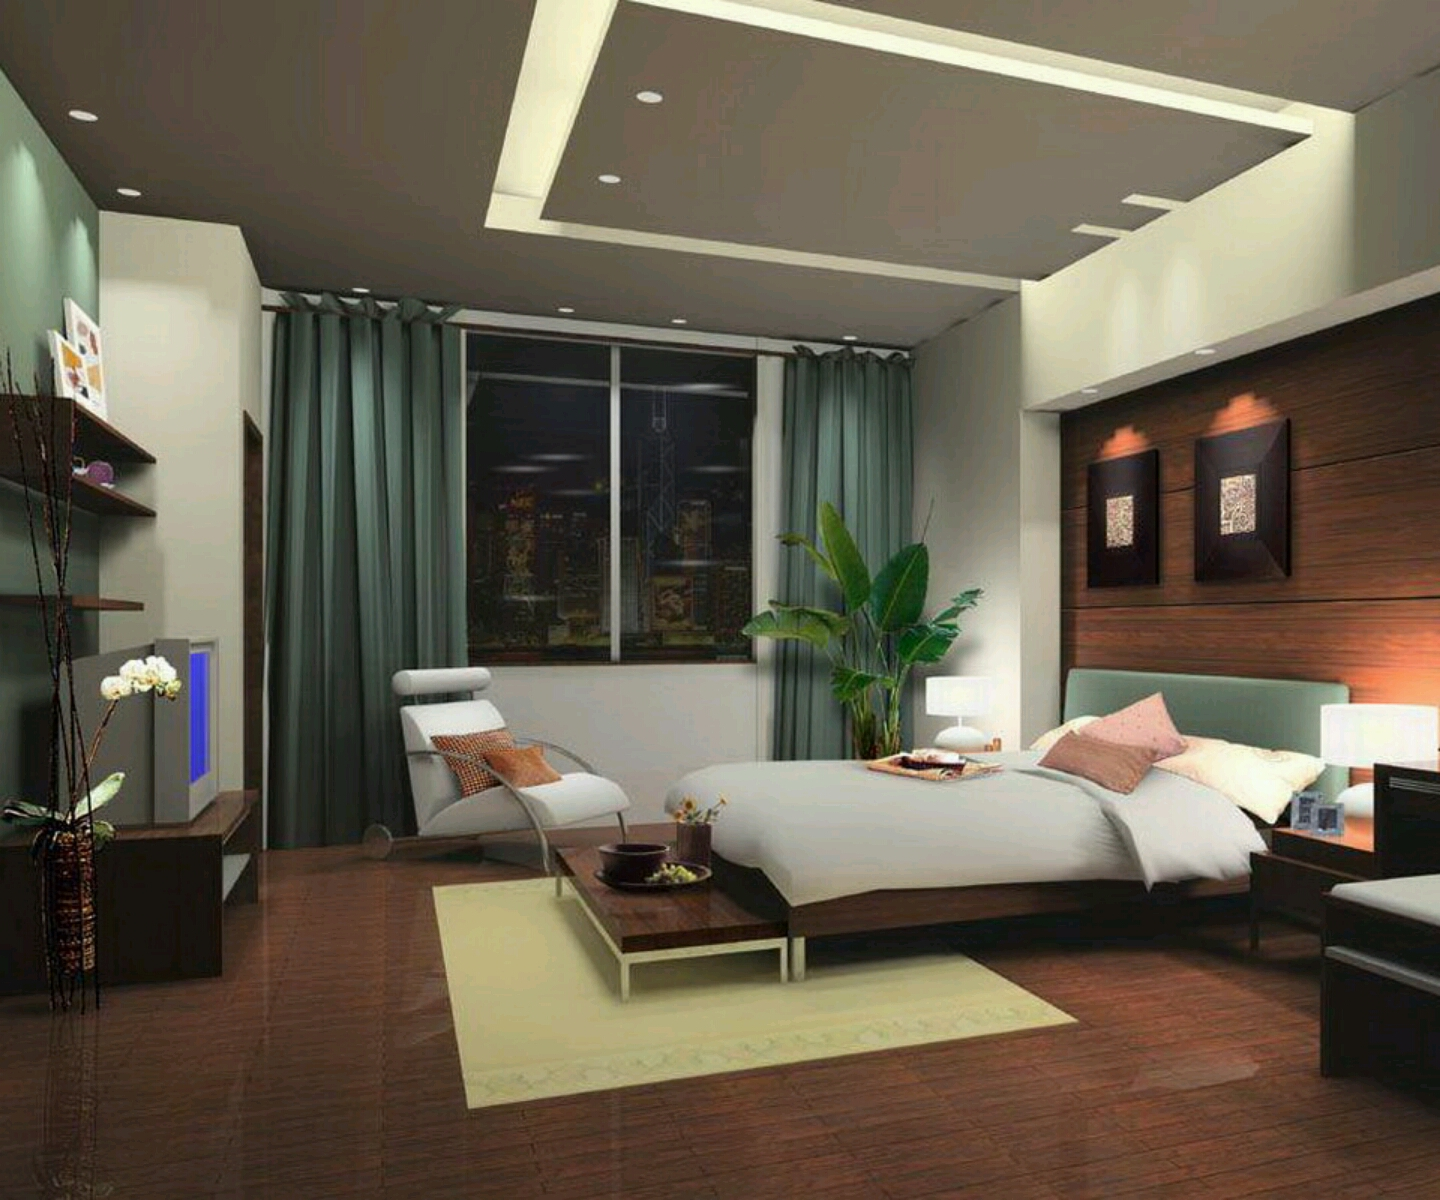 New home designs latest modern bedrooms designs best ideas for Bedroom design pictures